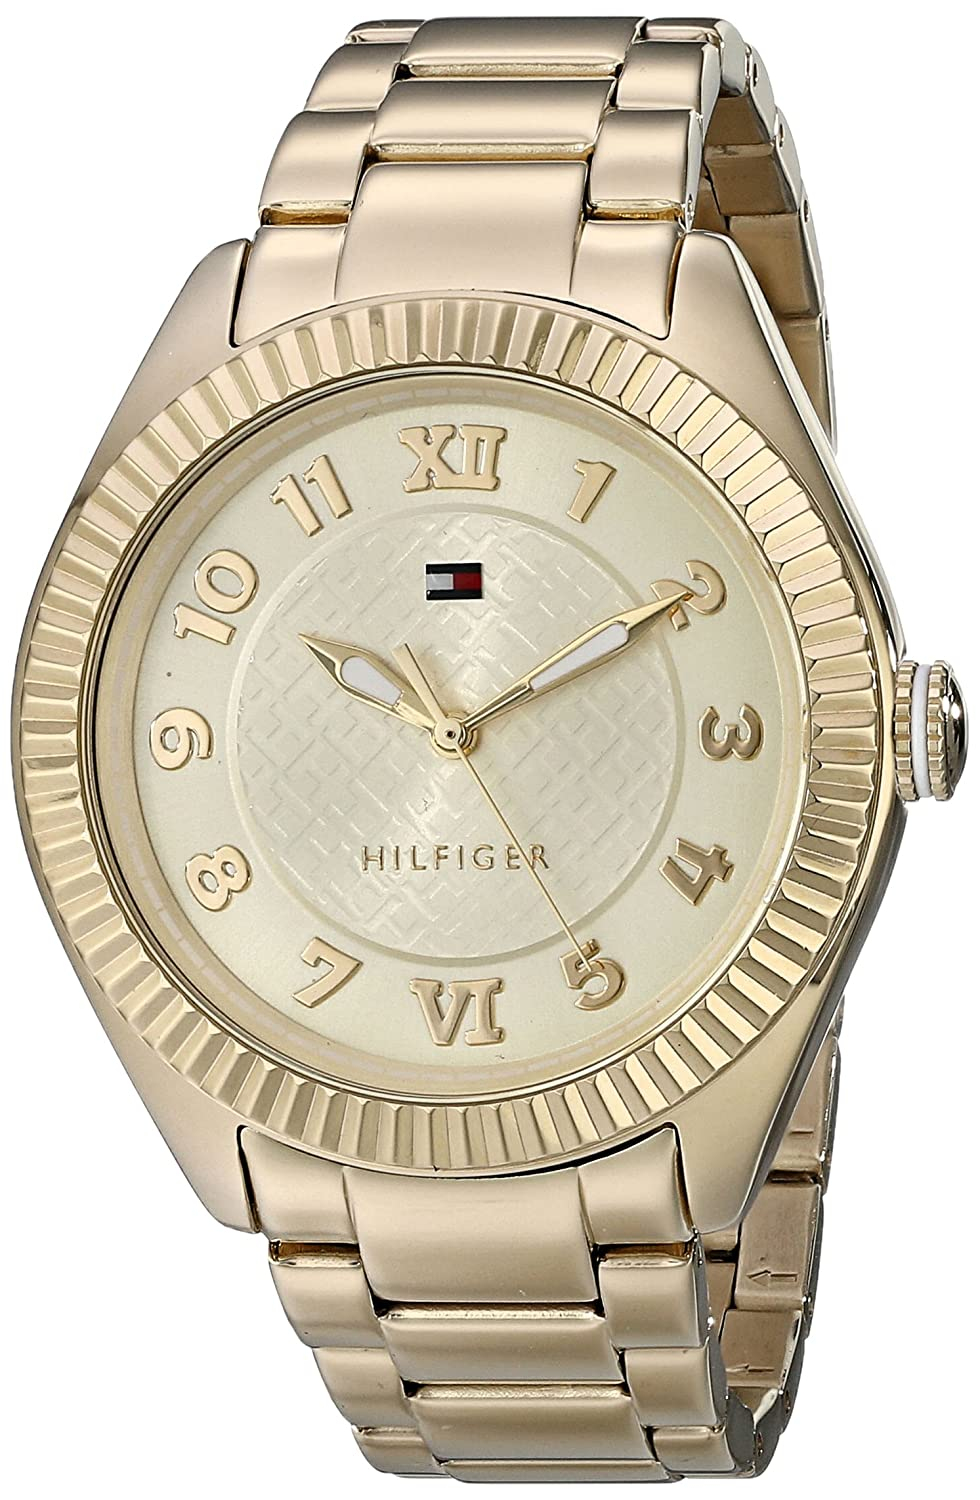 Amazon.com: Tommy Hilfiger Womens 1781345 Casual Sport Gold-Plated Coin Edge Bezel Watch: Tommy Hilfiger: Watches